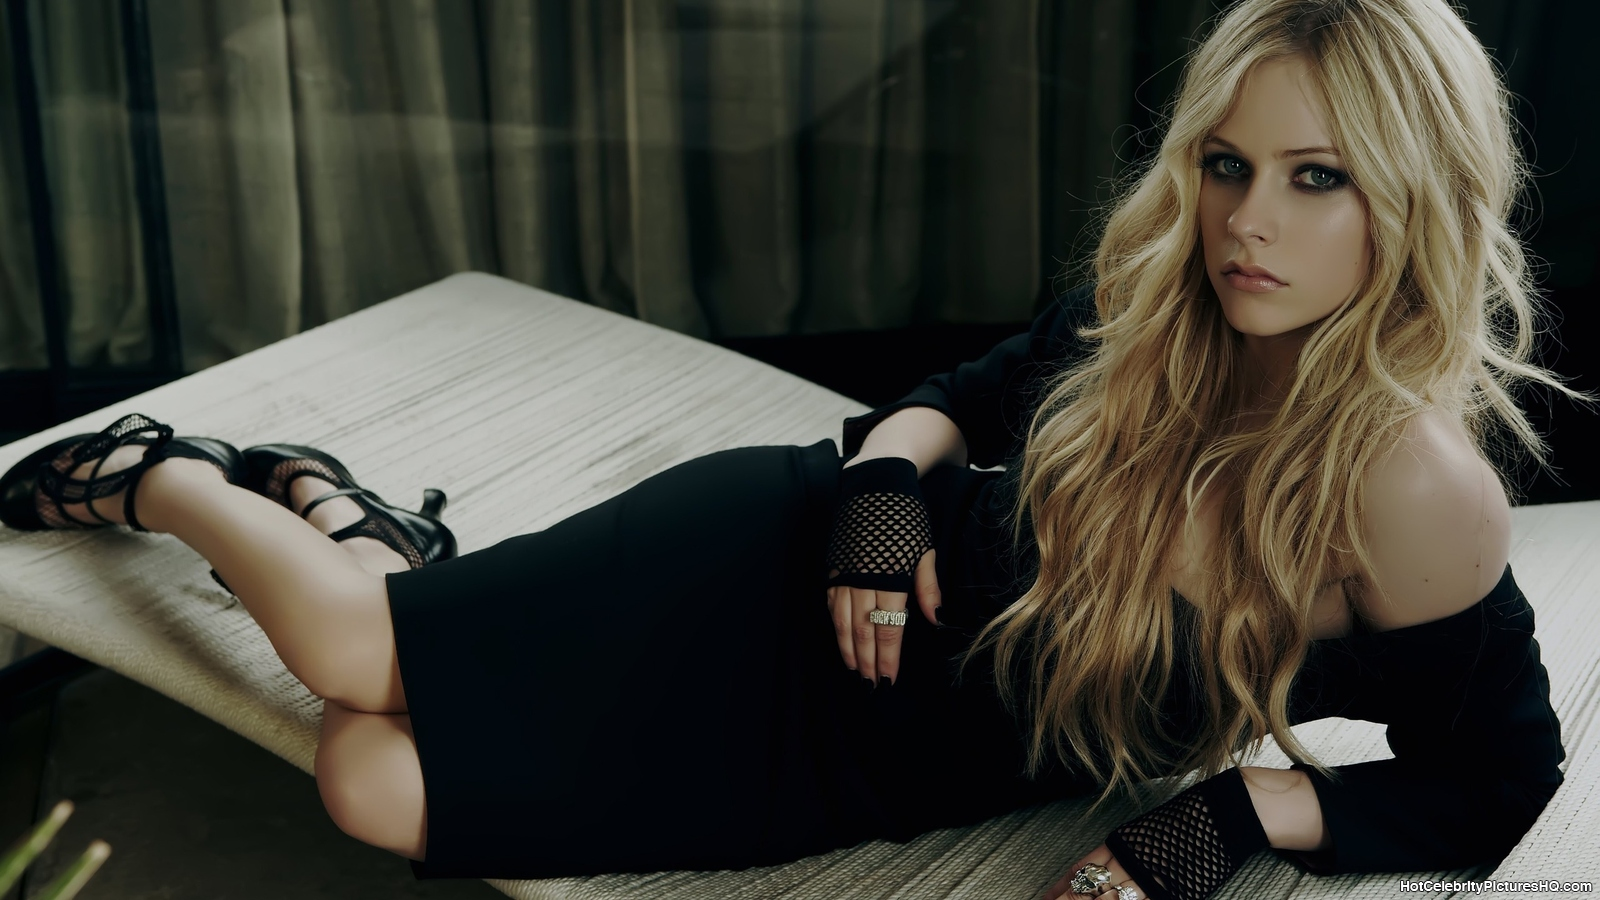 All Wallpapers: Avril Lavigne Beautiful hd Wallpapers 2013